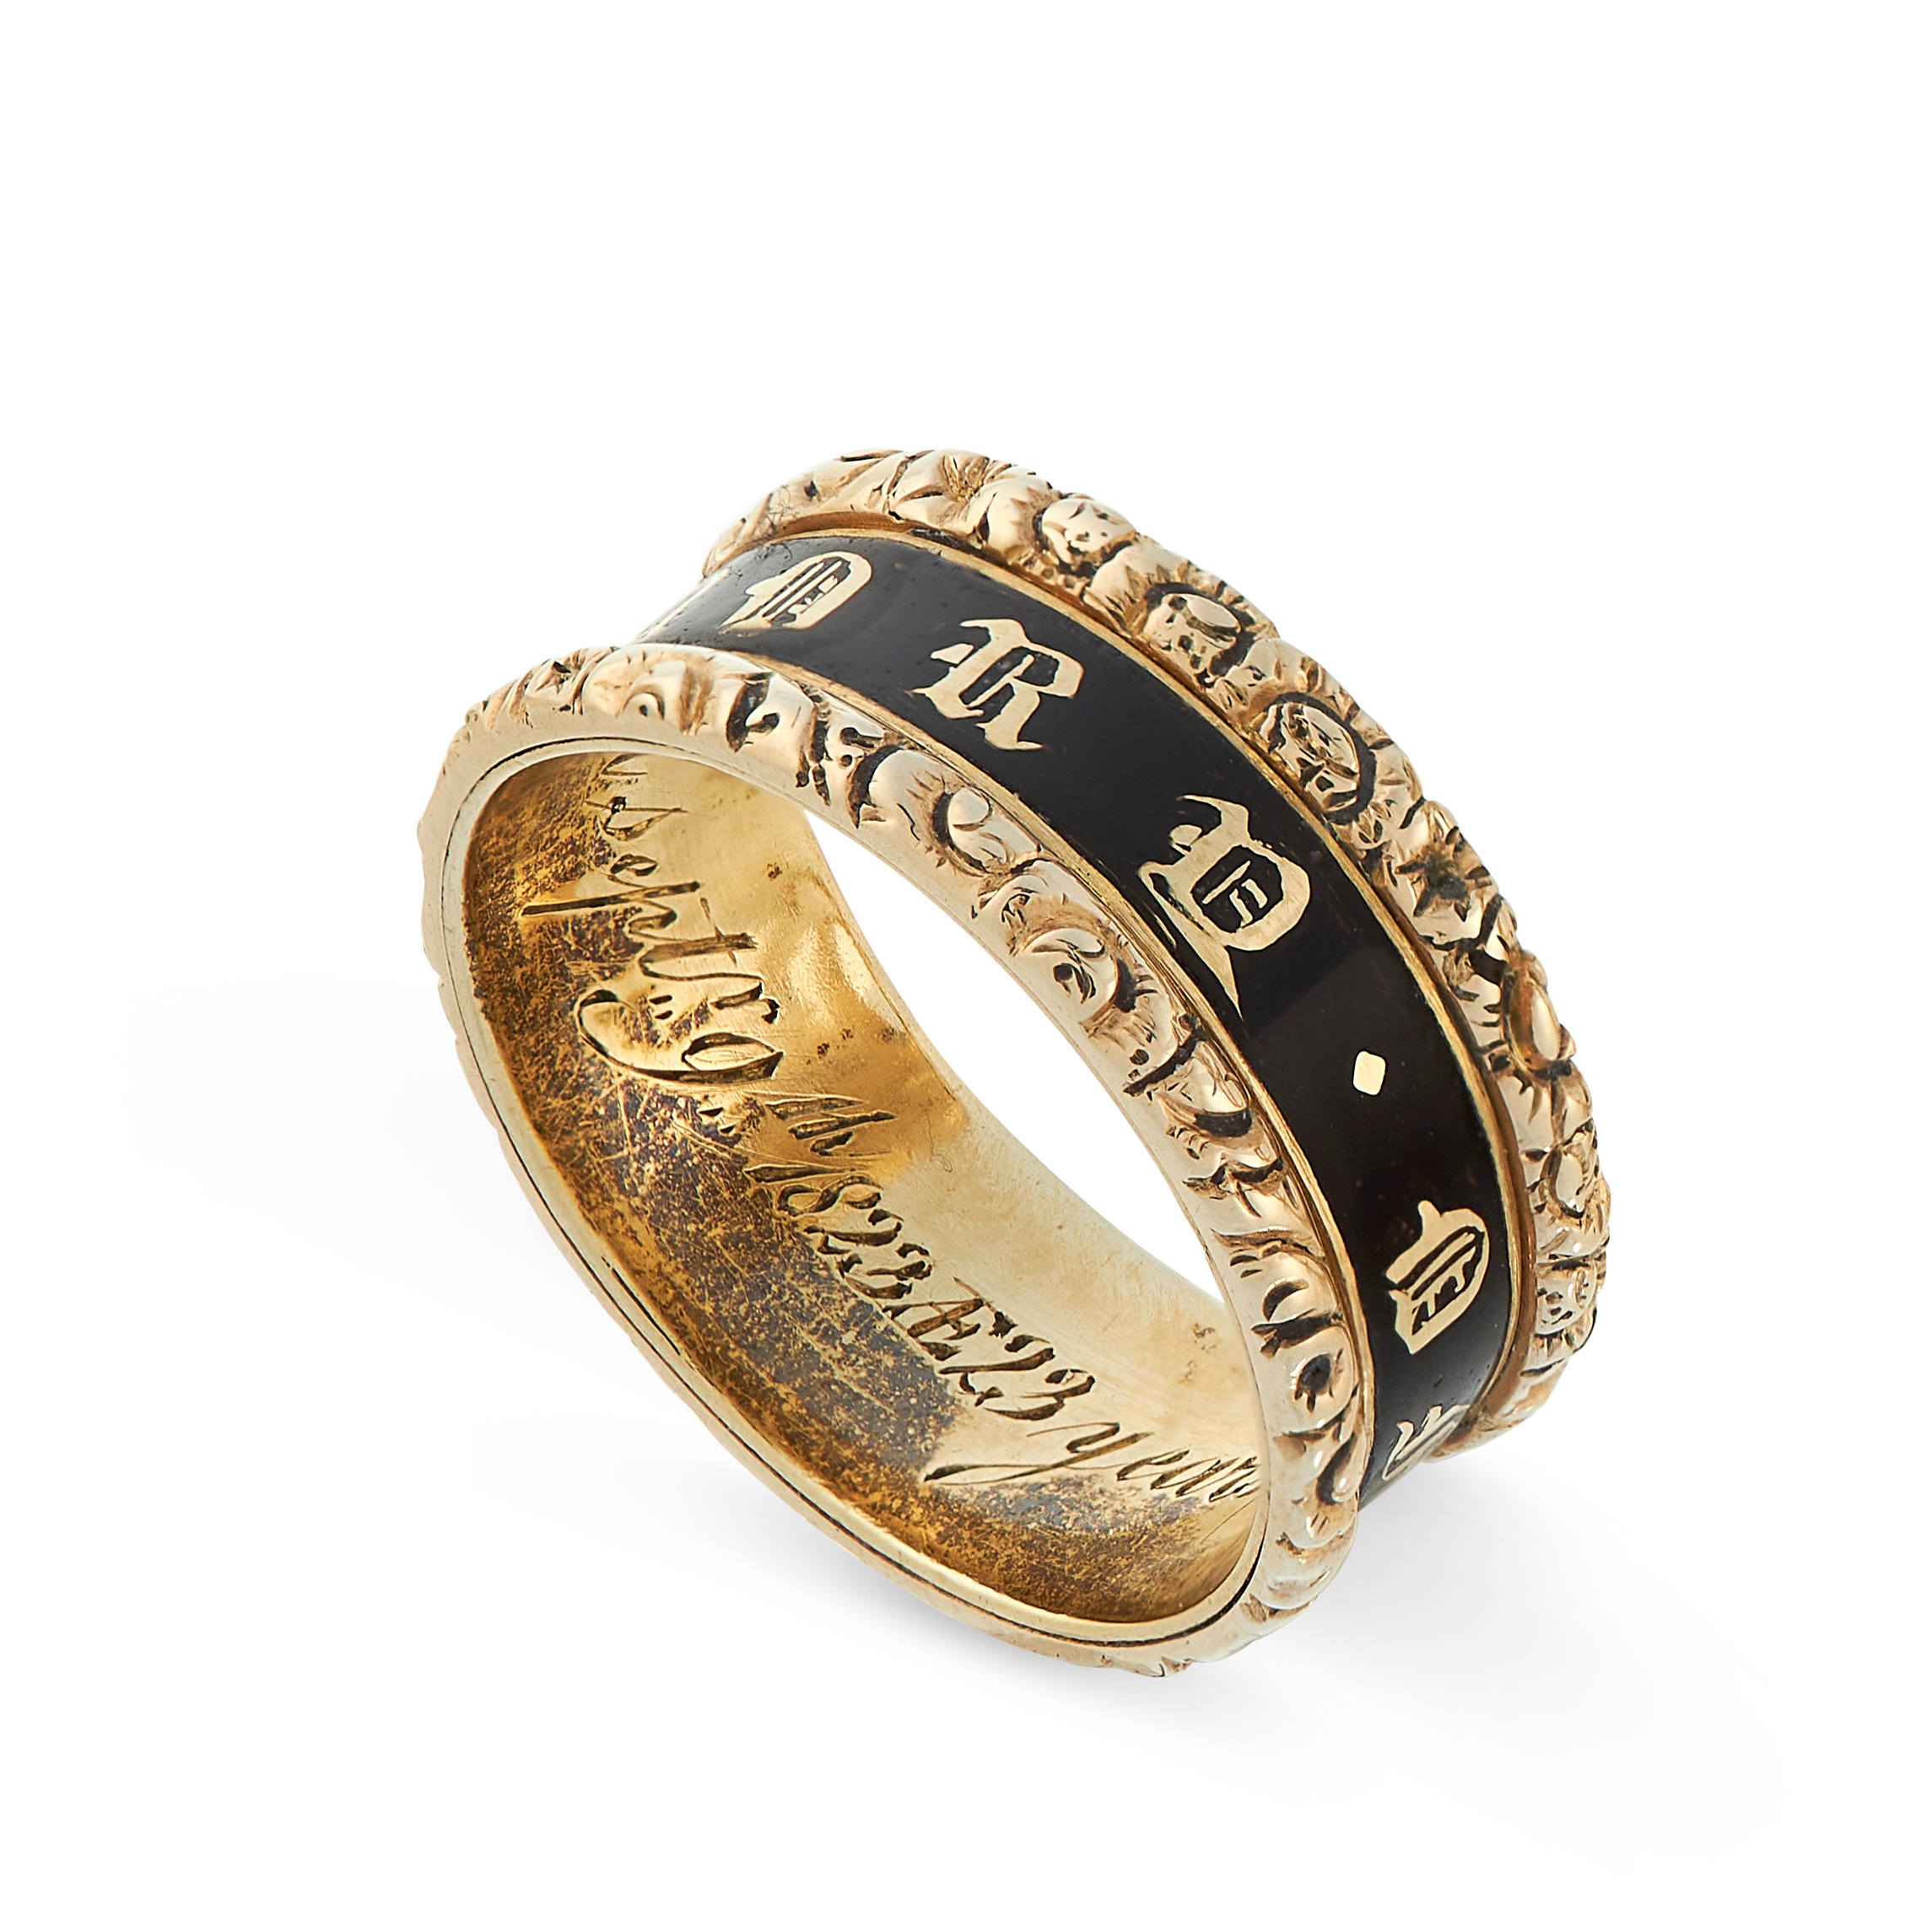 ANTIQUE ENAMEL MOURNING RING, CIRCA 1823 inscribed 'IN MEMORY OF' in black enamel, inscribed - Image 2 of 2